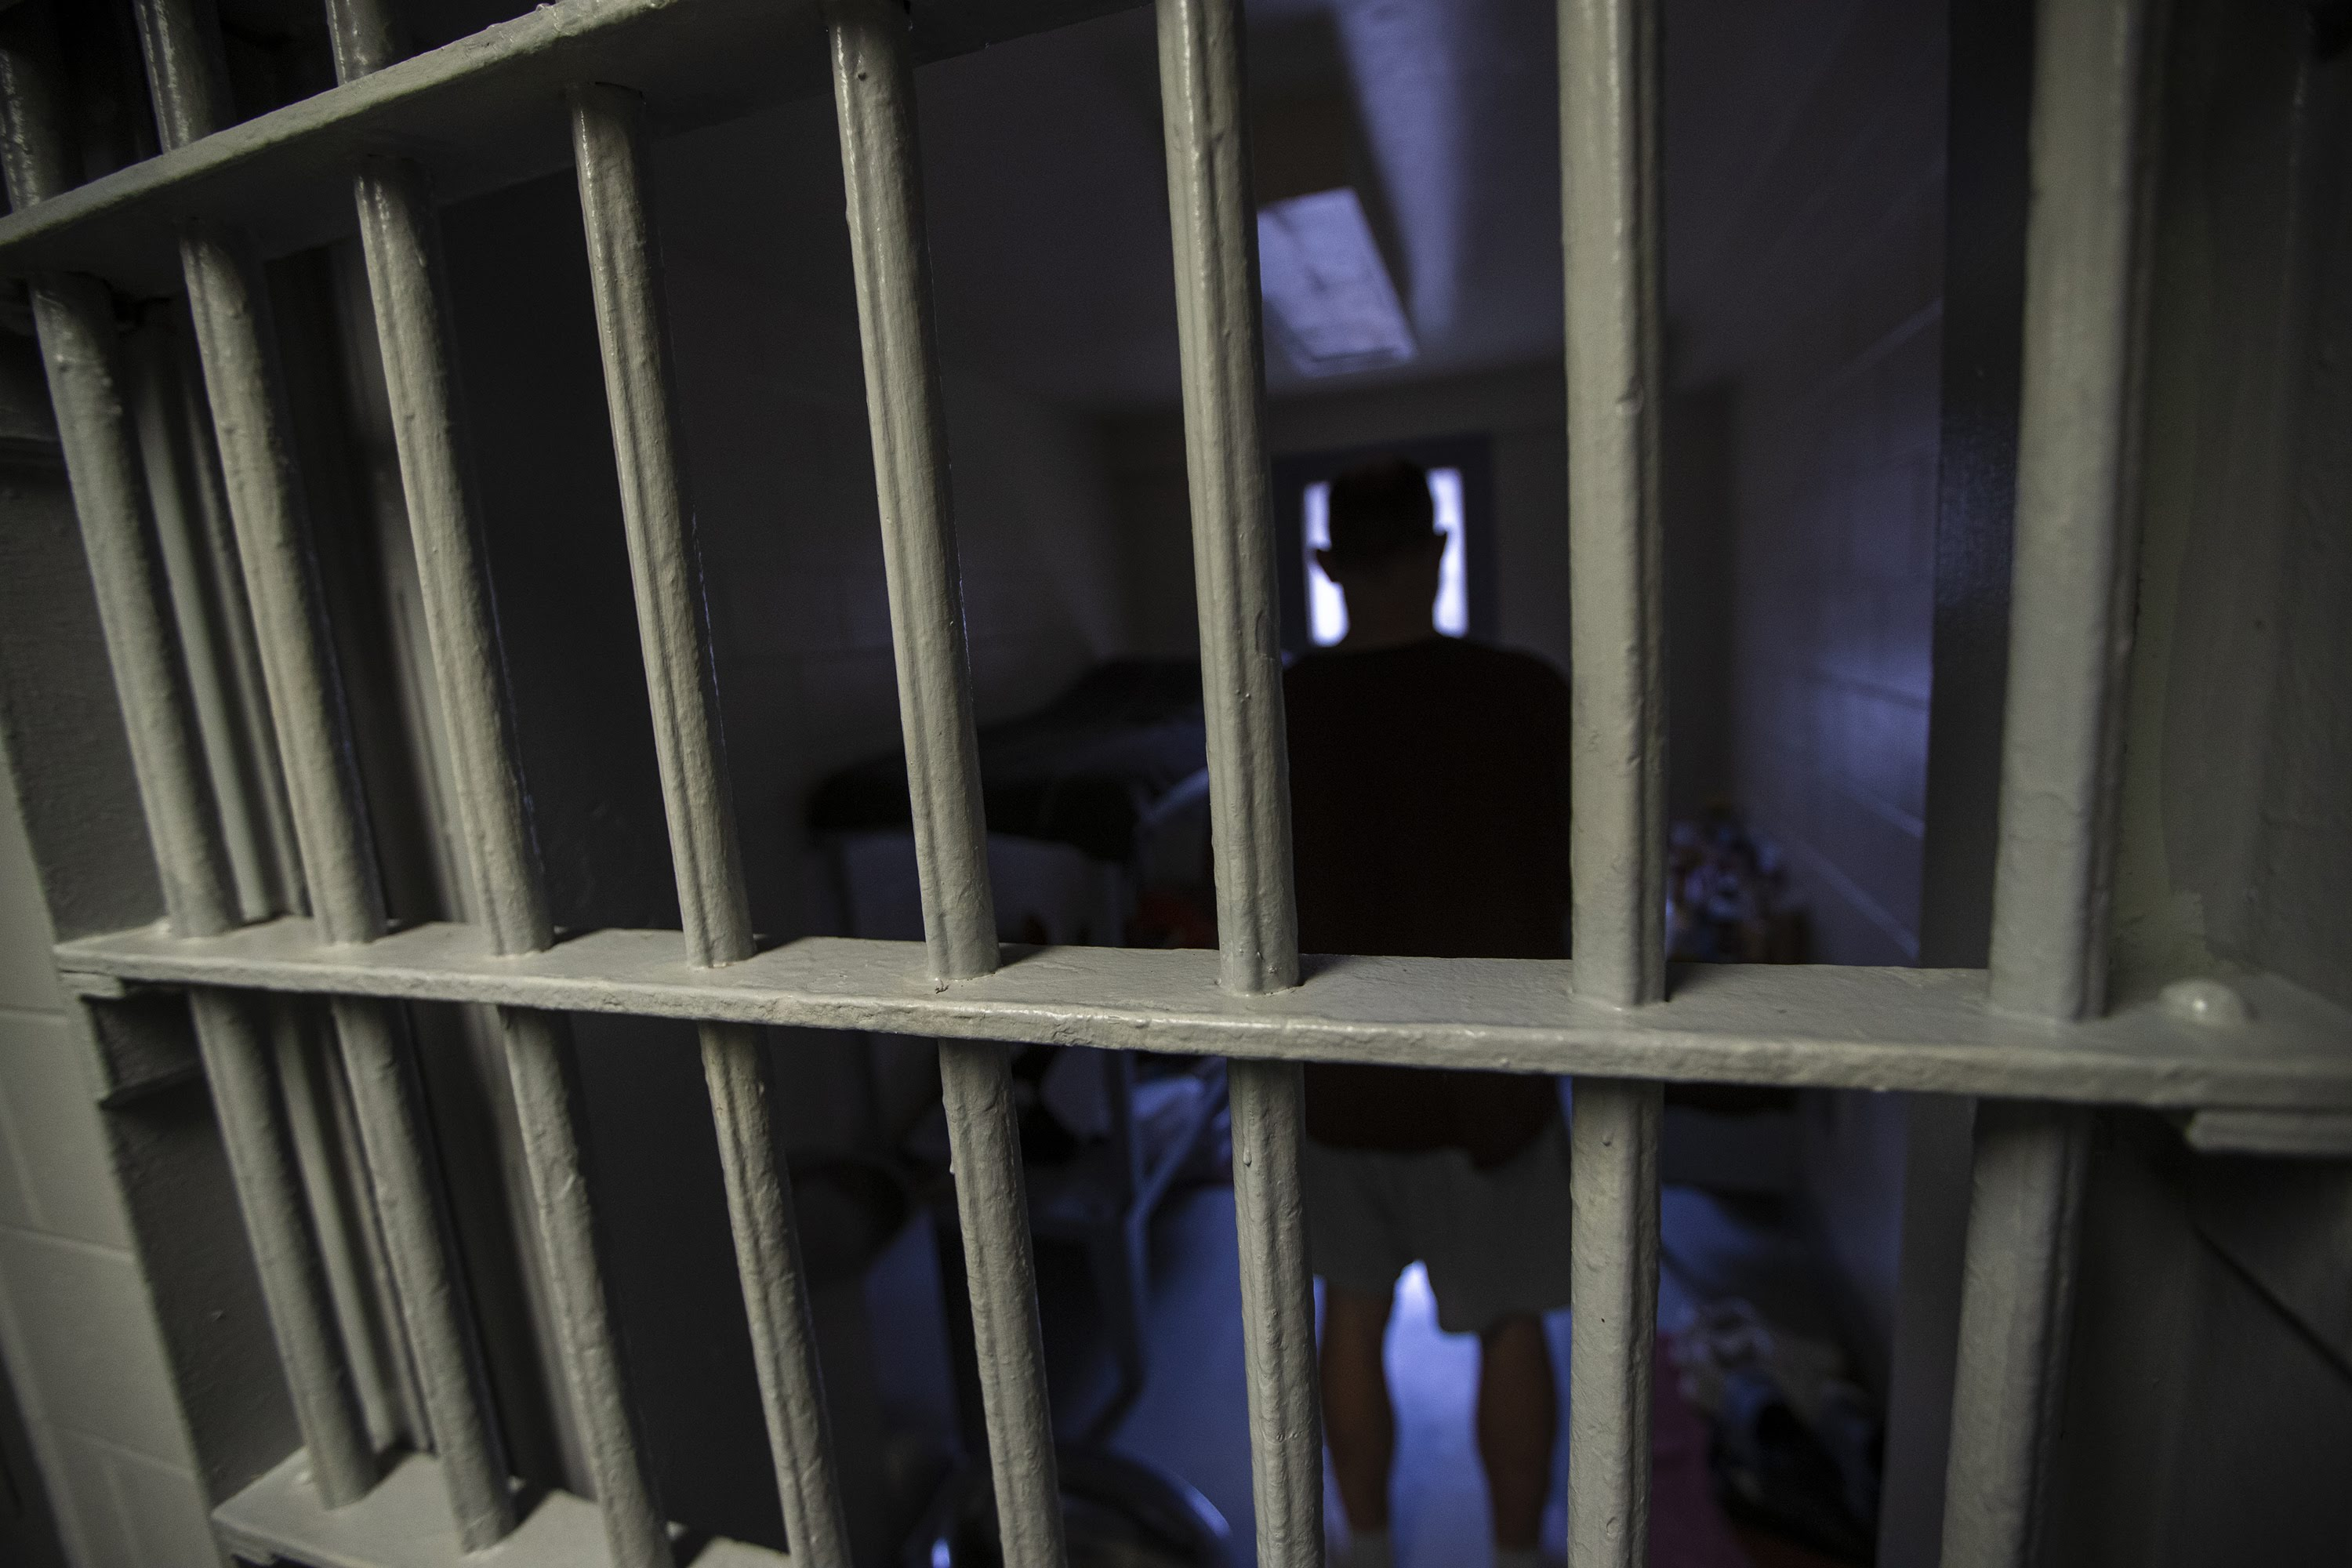 An inmates stands in a cell inside one of Massachusetts' county jails. (Jesse Costa/WBUR)